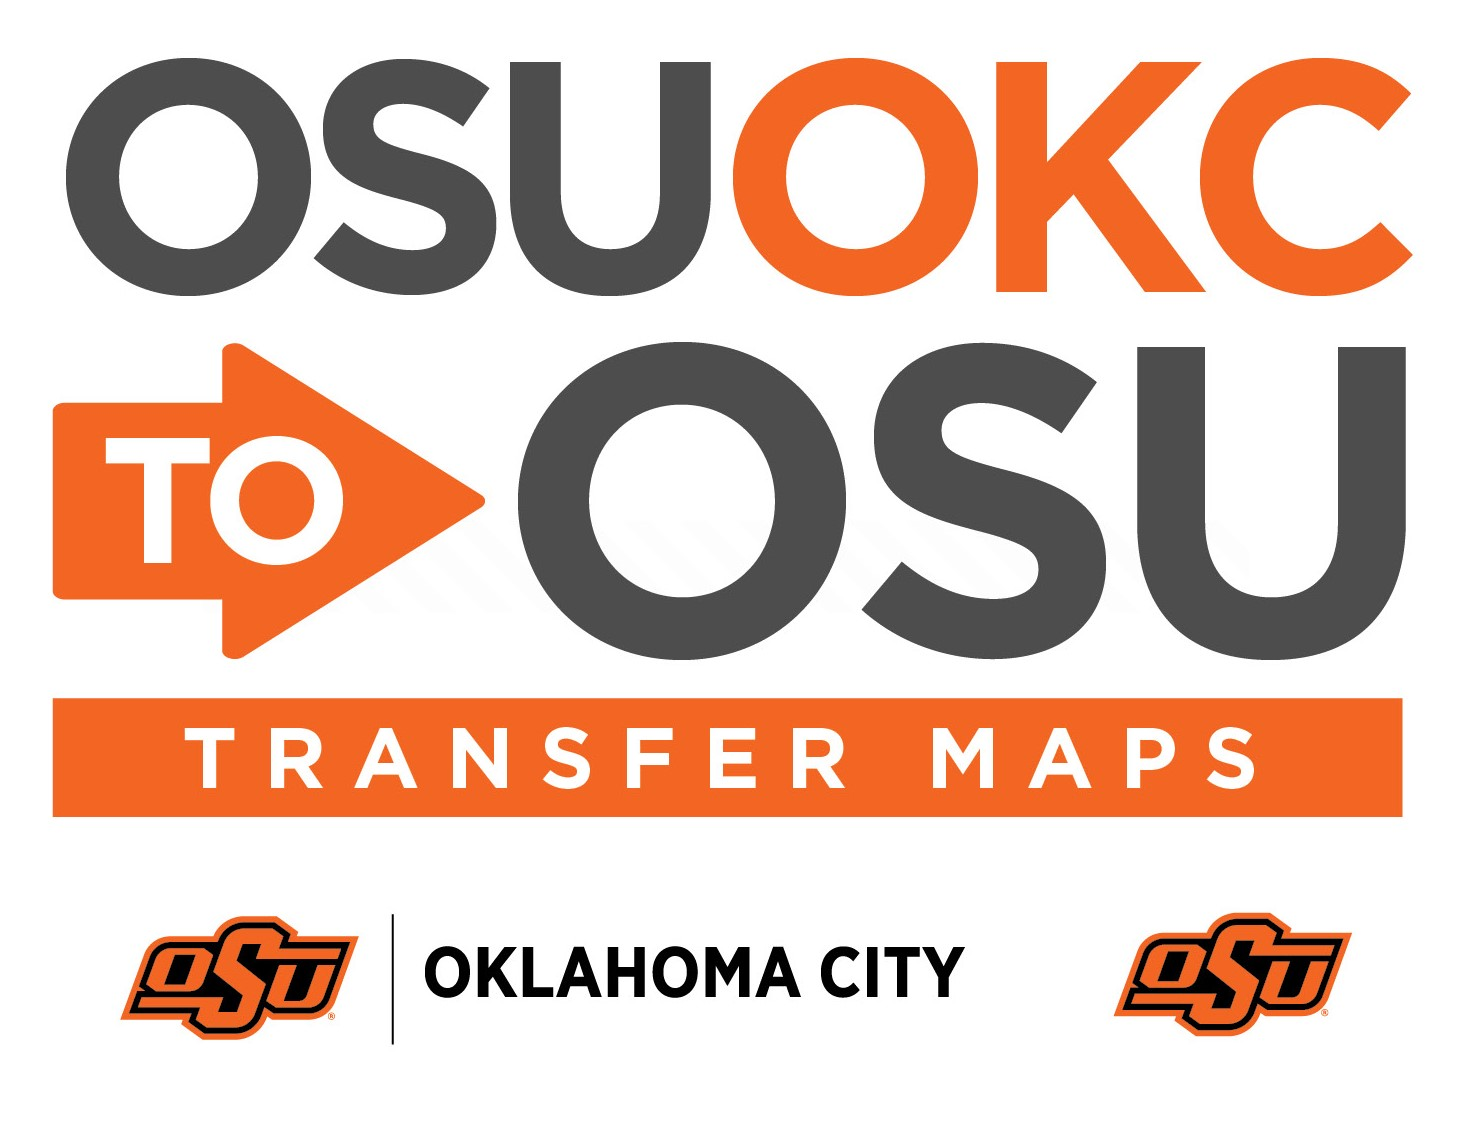 OSU-OKC to OSU Transfer Map